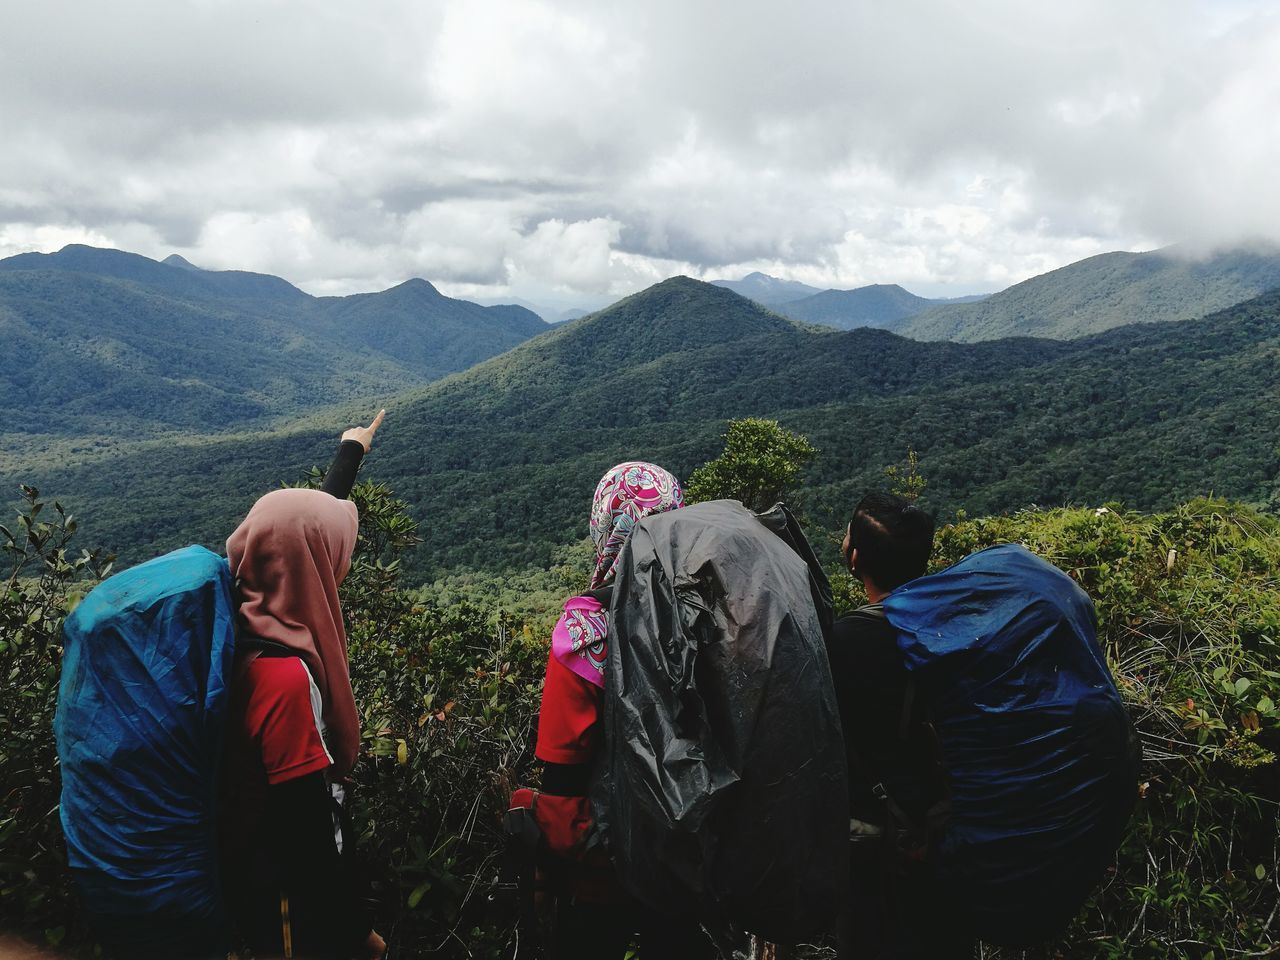 real people, backpack, mountain, hiking, rear view, landscape, sky, outdoors, nature, adventure, field, day, men, cloud - sky, lifestyles, mountain range, togetherness, women, scenics, beauty in nature, grass, friendship, people